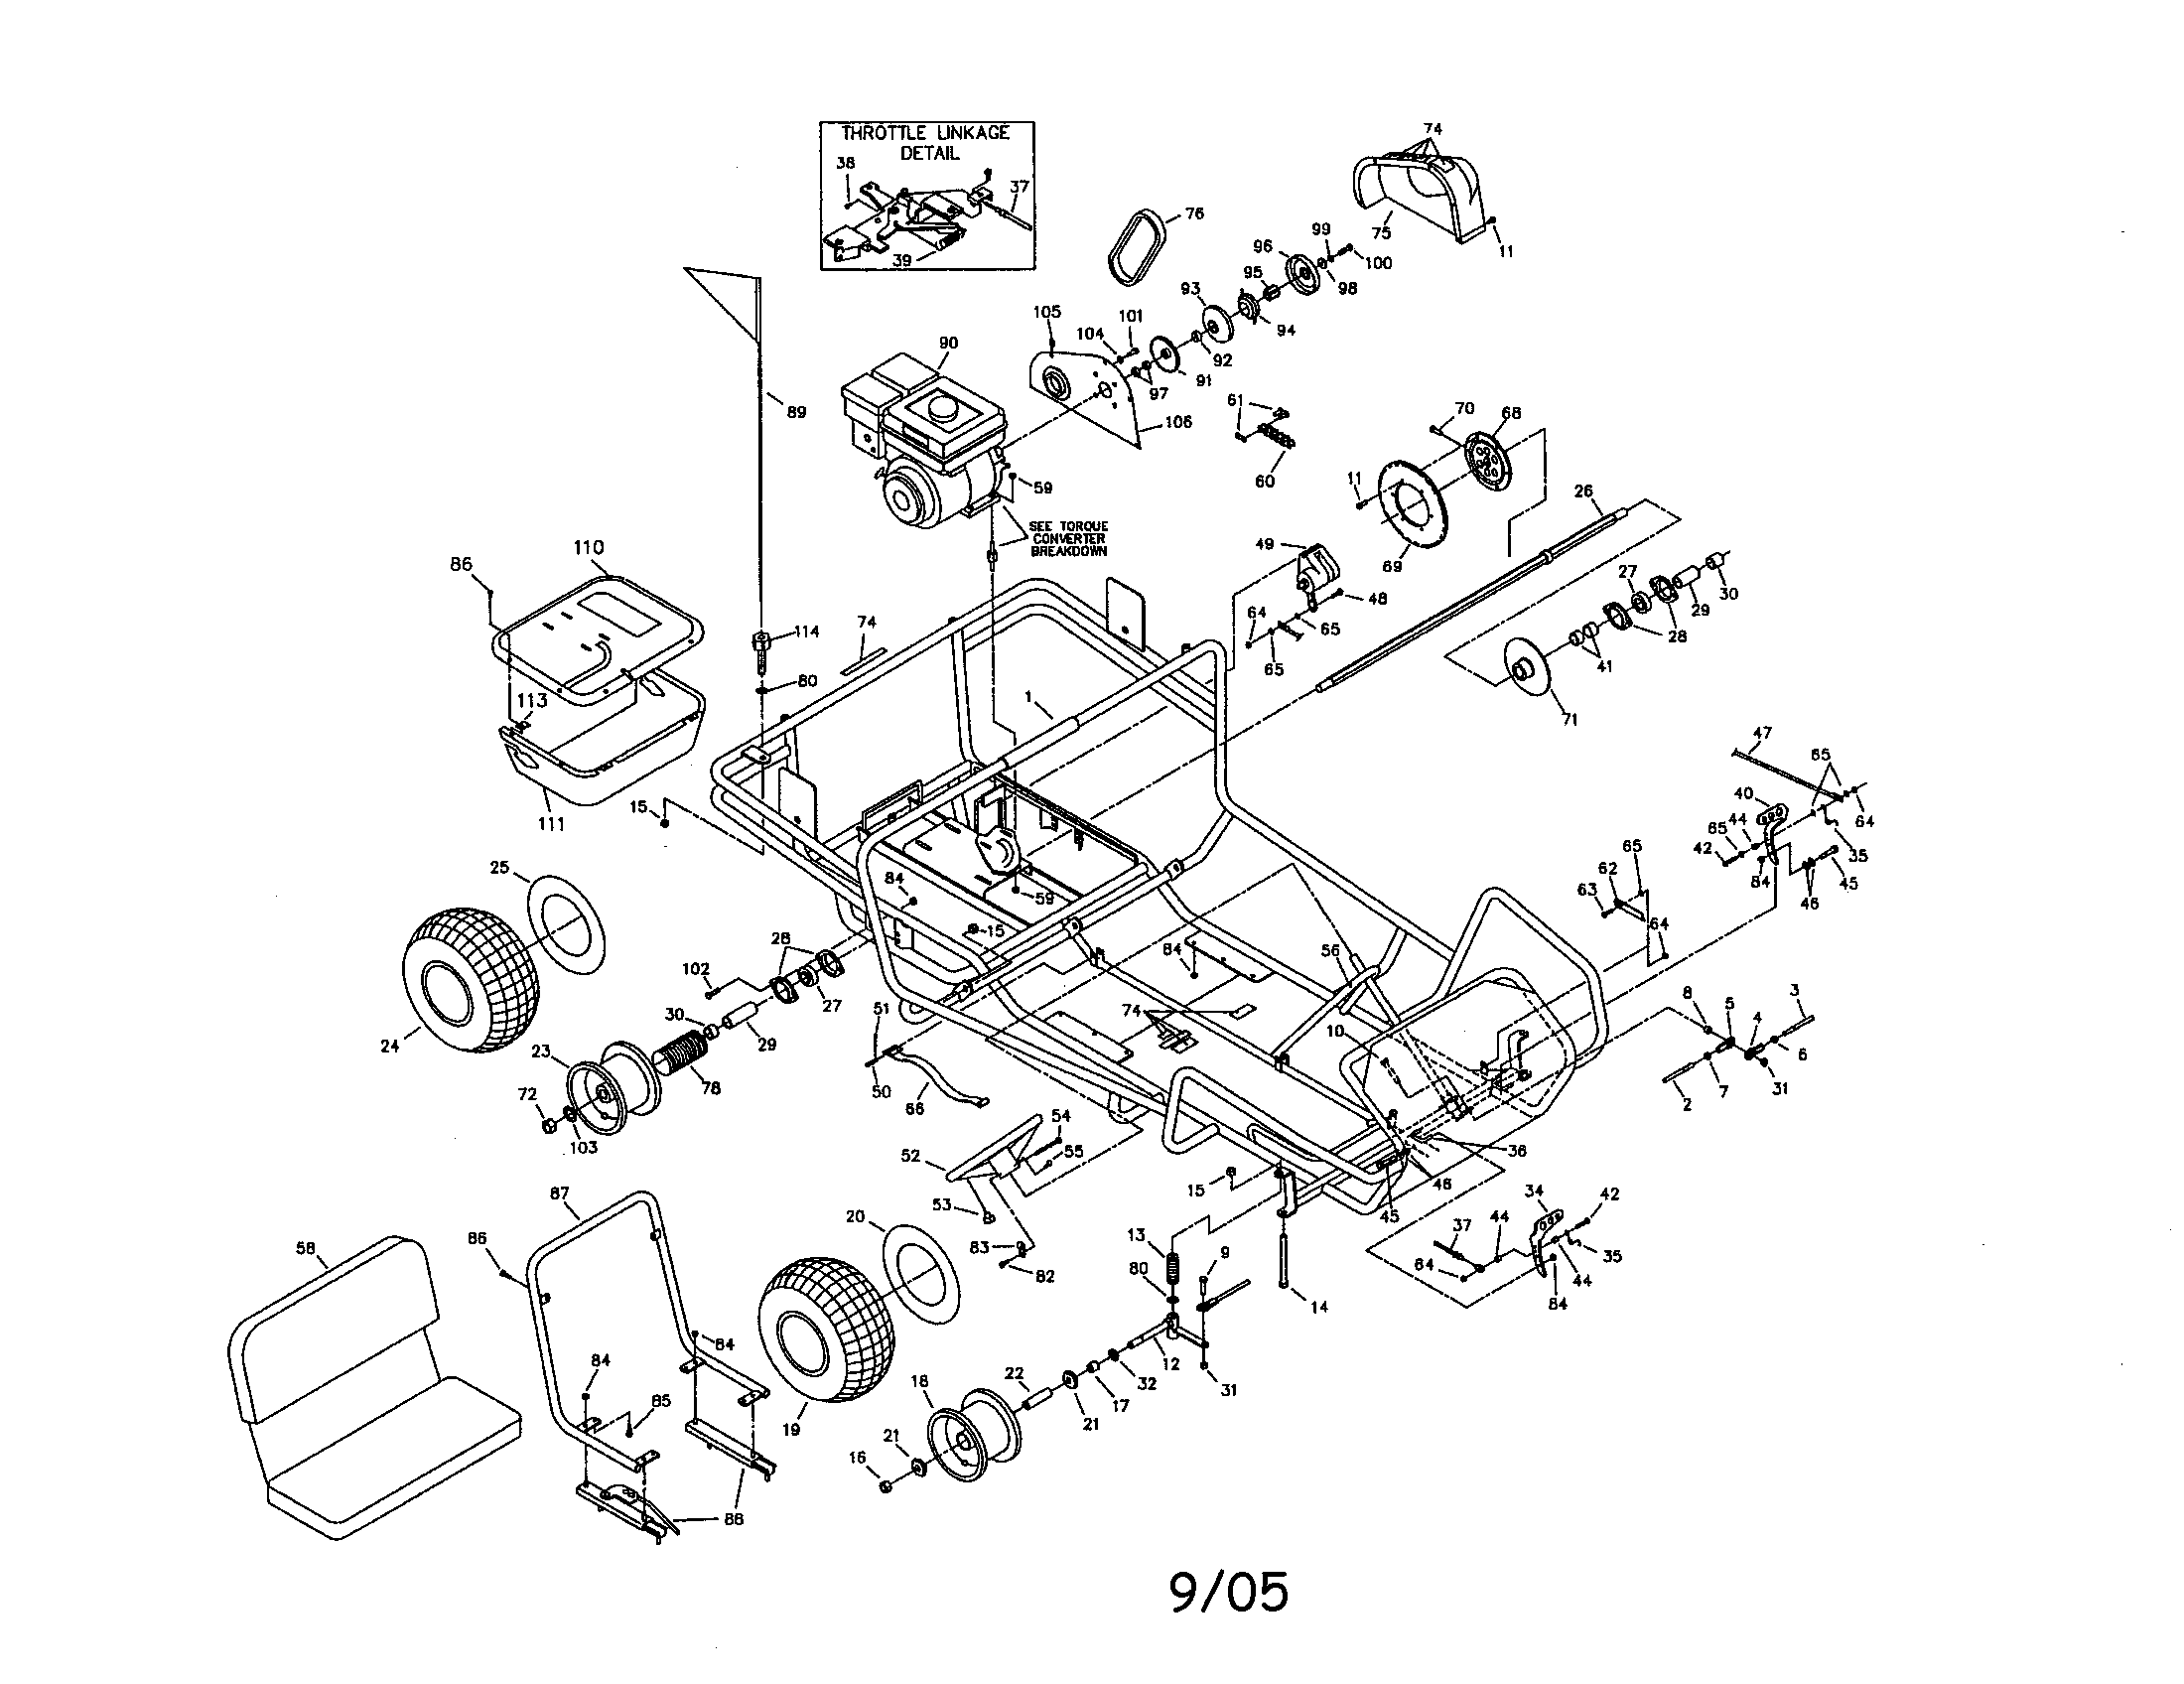 Manco Go Kart Parts Diagram. Engine. Wiring Diagram Images